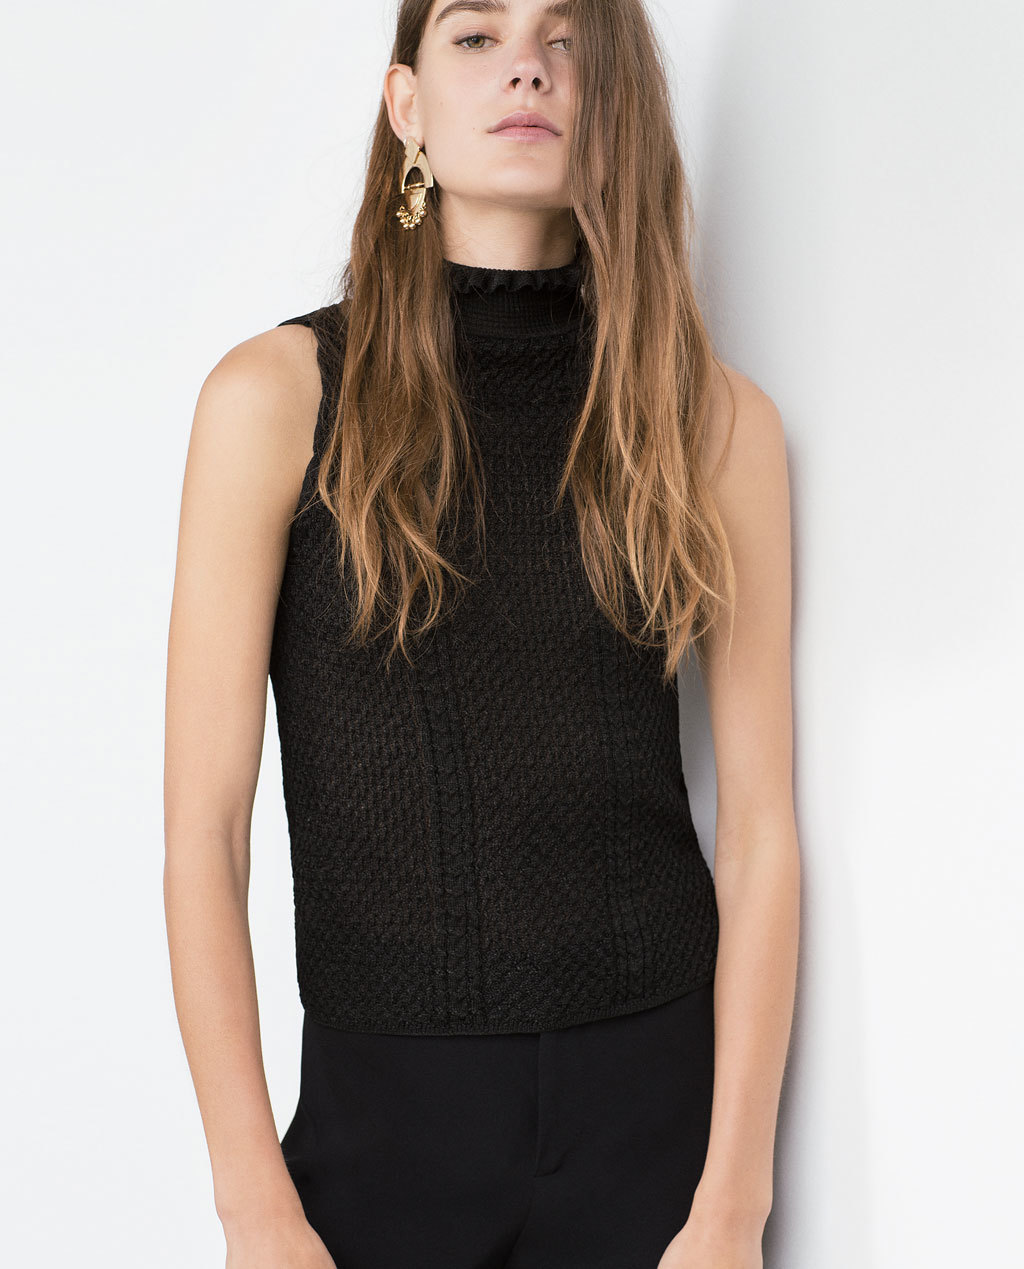 Tank Top - pattern: plain; sleeve style: sleeveless; neckline: high neck; predominant colour: black; occasions: casual, creative work; length: standard; style: top; fibres: viscose/rayon - stretch; fit: body skimming; sleeve length: sleeveless; texture group: knits/crochet; pattern type: knitted - fine stitch; season: a/w 2015